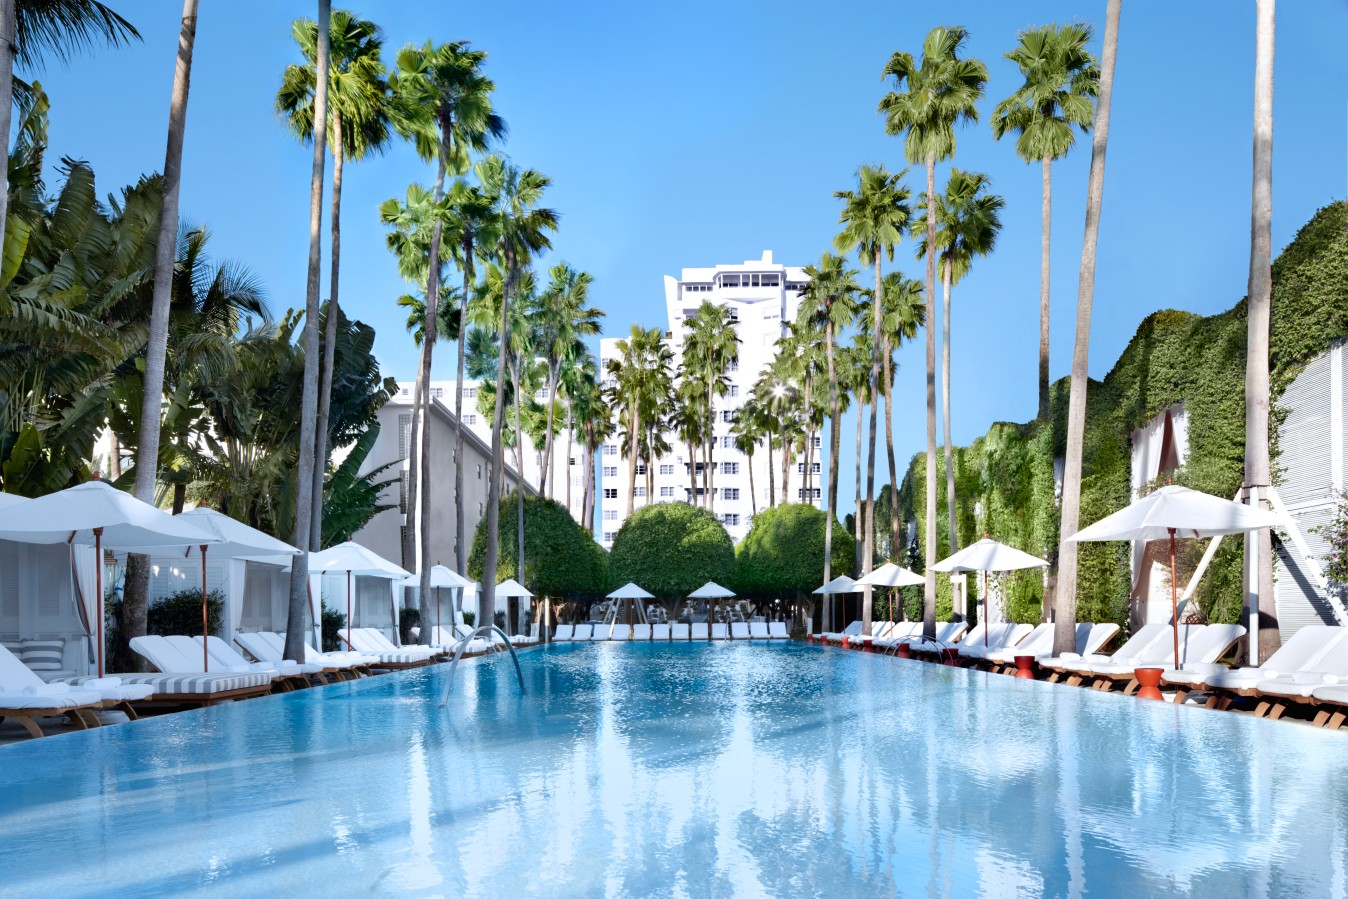 Pool at the Delano Miami Hotel